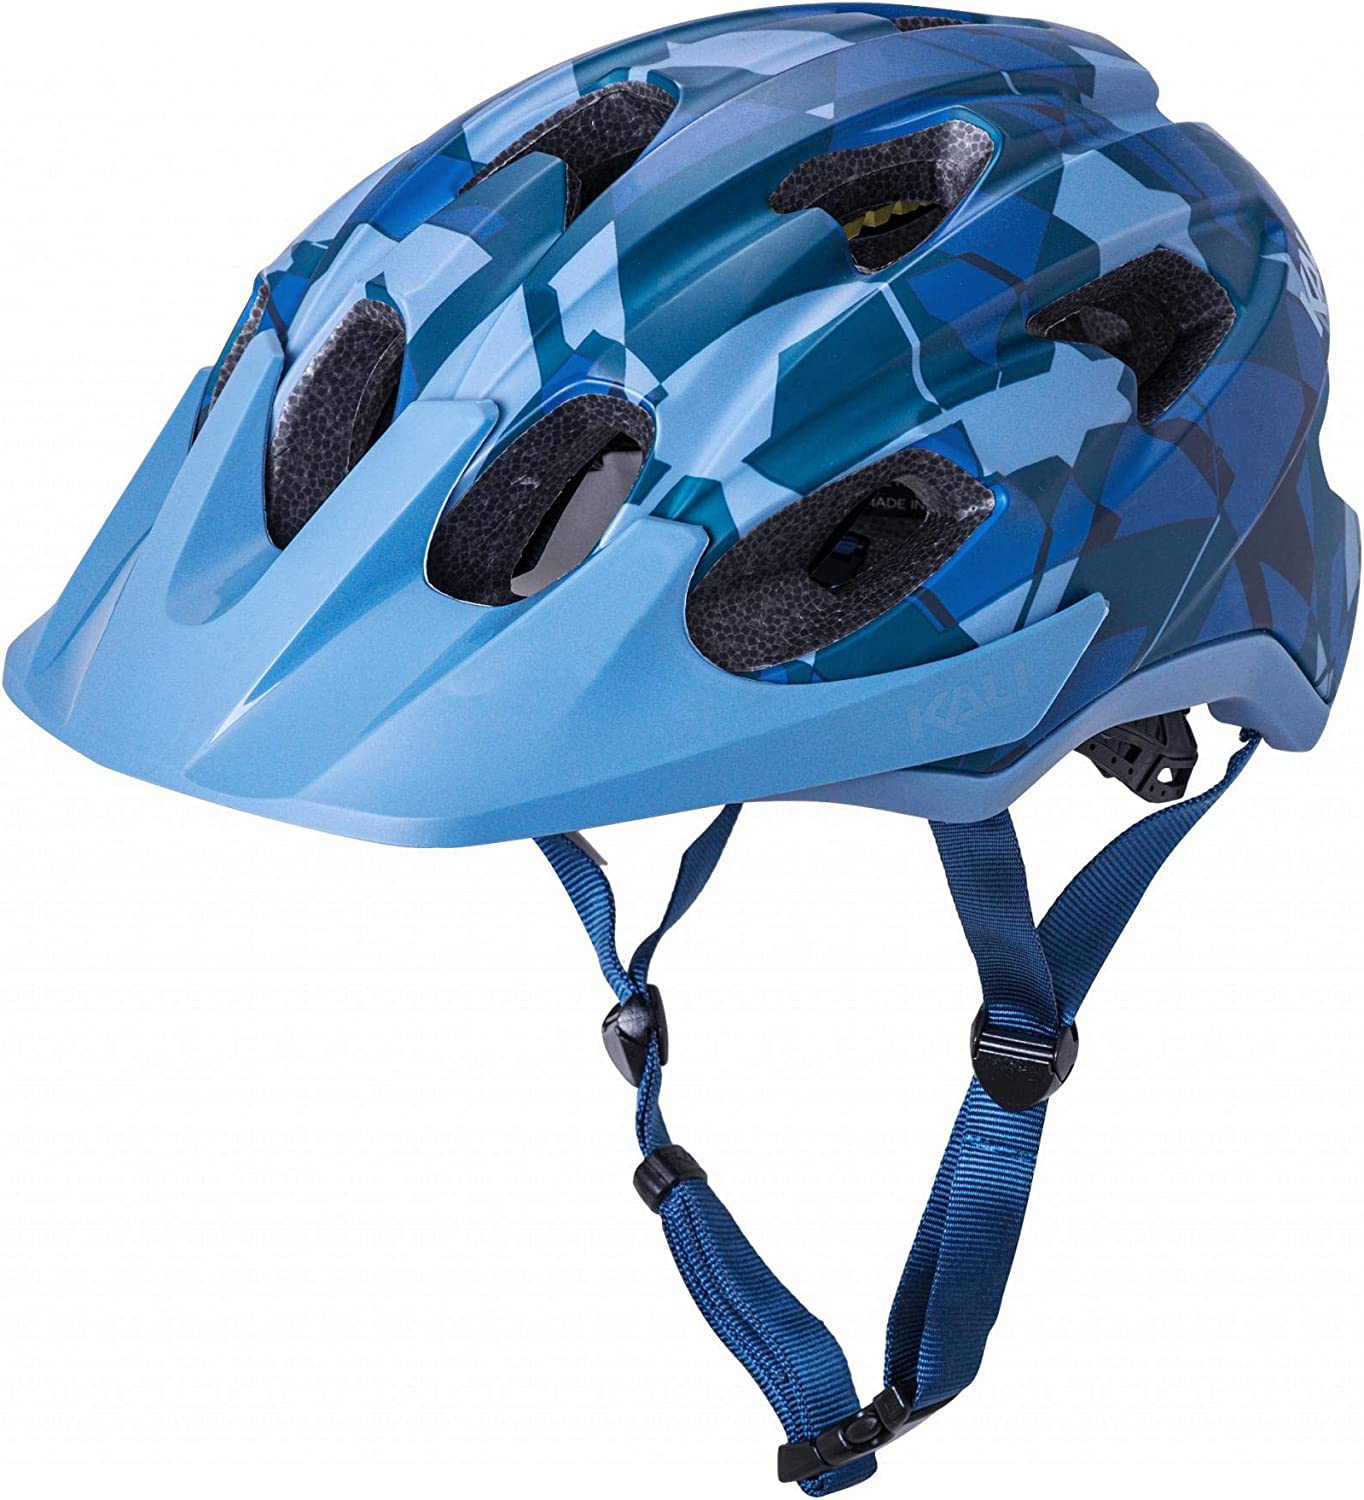 Kali NEW before selling Protectives Pace Solid ! Super beauty product restock quality top! Adult Helmet BMX Cycling Off-Road